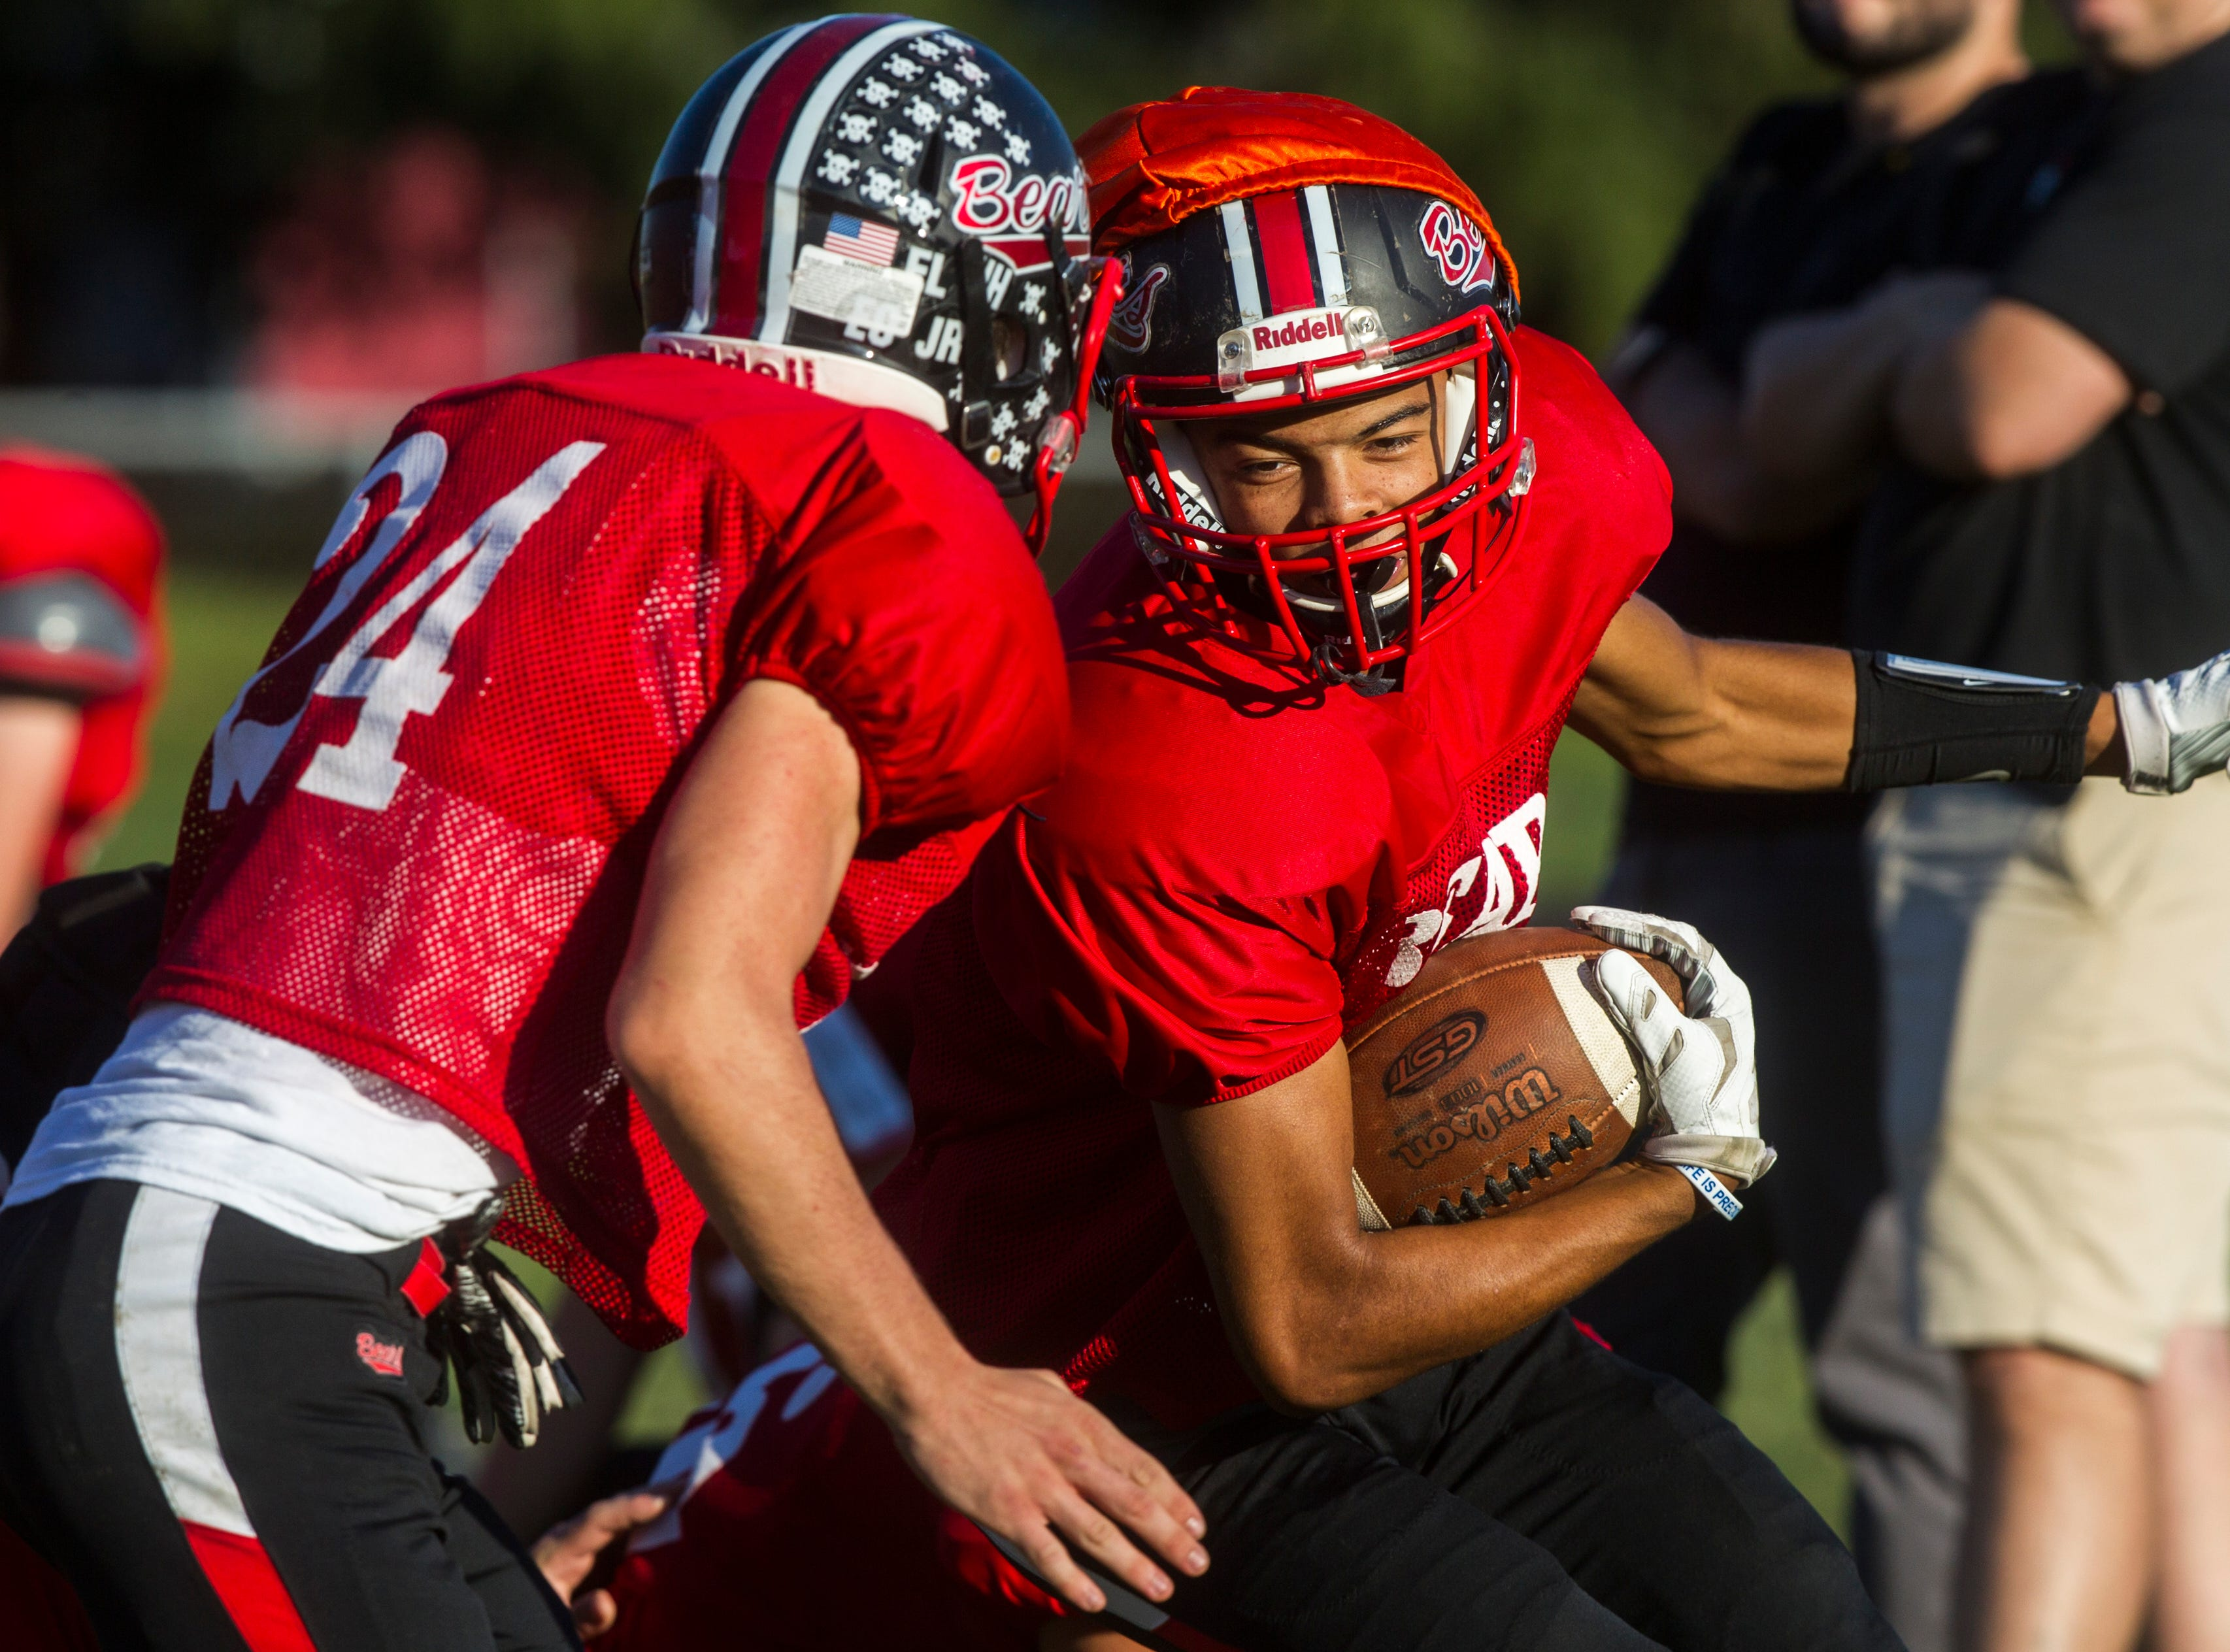 West Branch's Thomas Gould (6) gets tackled during a varsity football practice on Tuesday, Sept. 11, 2018, at the West Branch High School practice field.